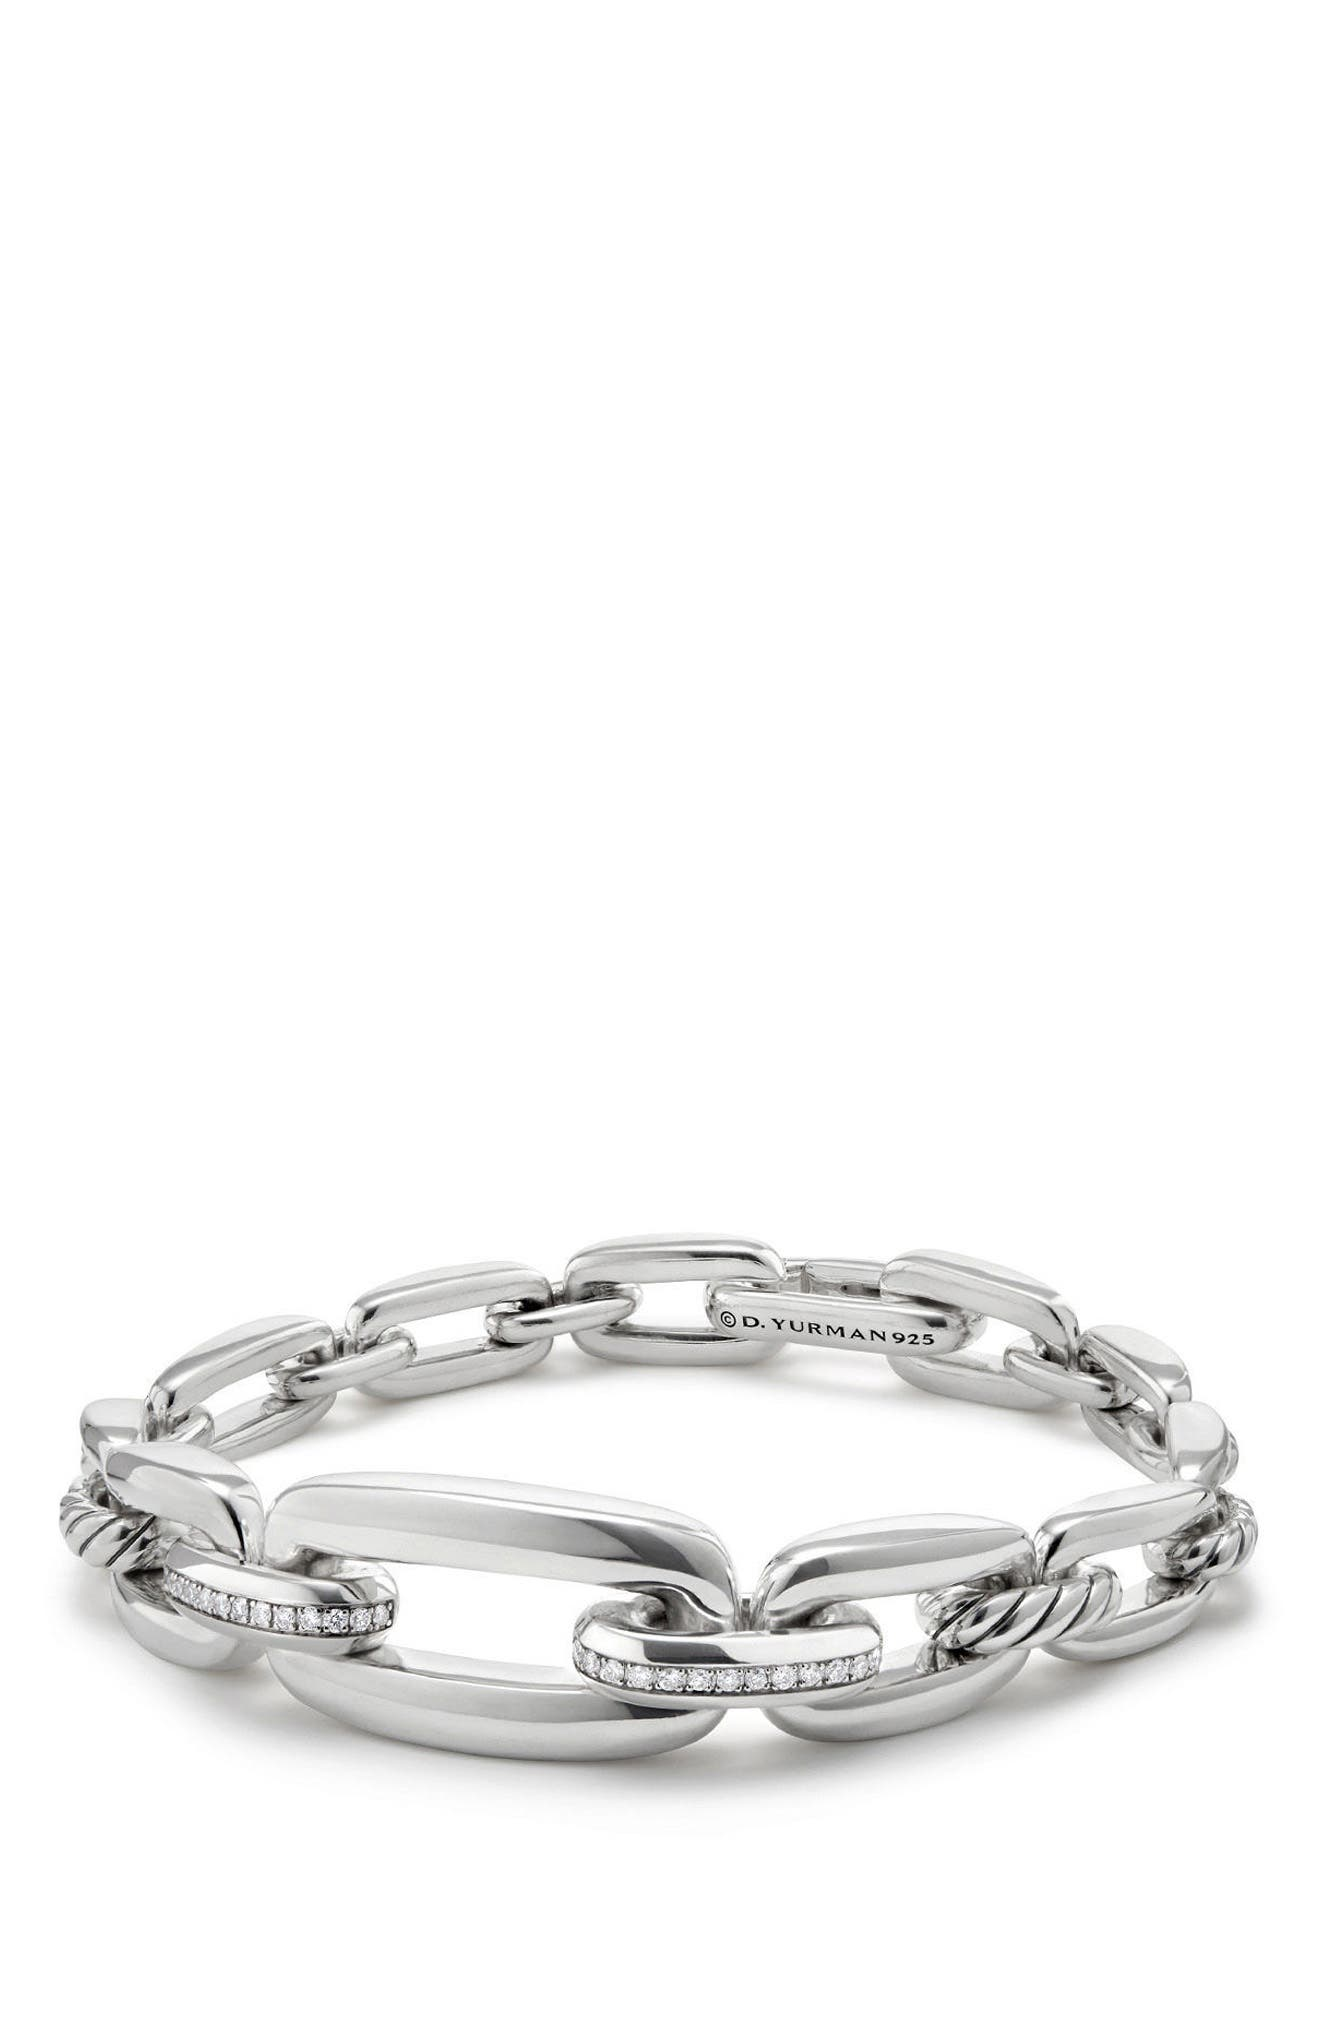 Wellesley Chain Link Bracelet with Diamonds,                             Main thumbnail 1, color,                             Silver